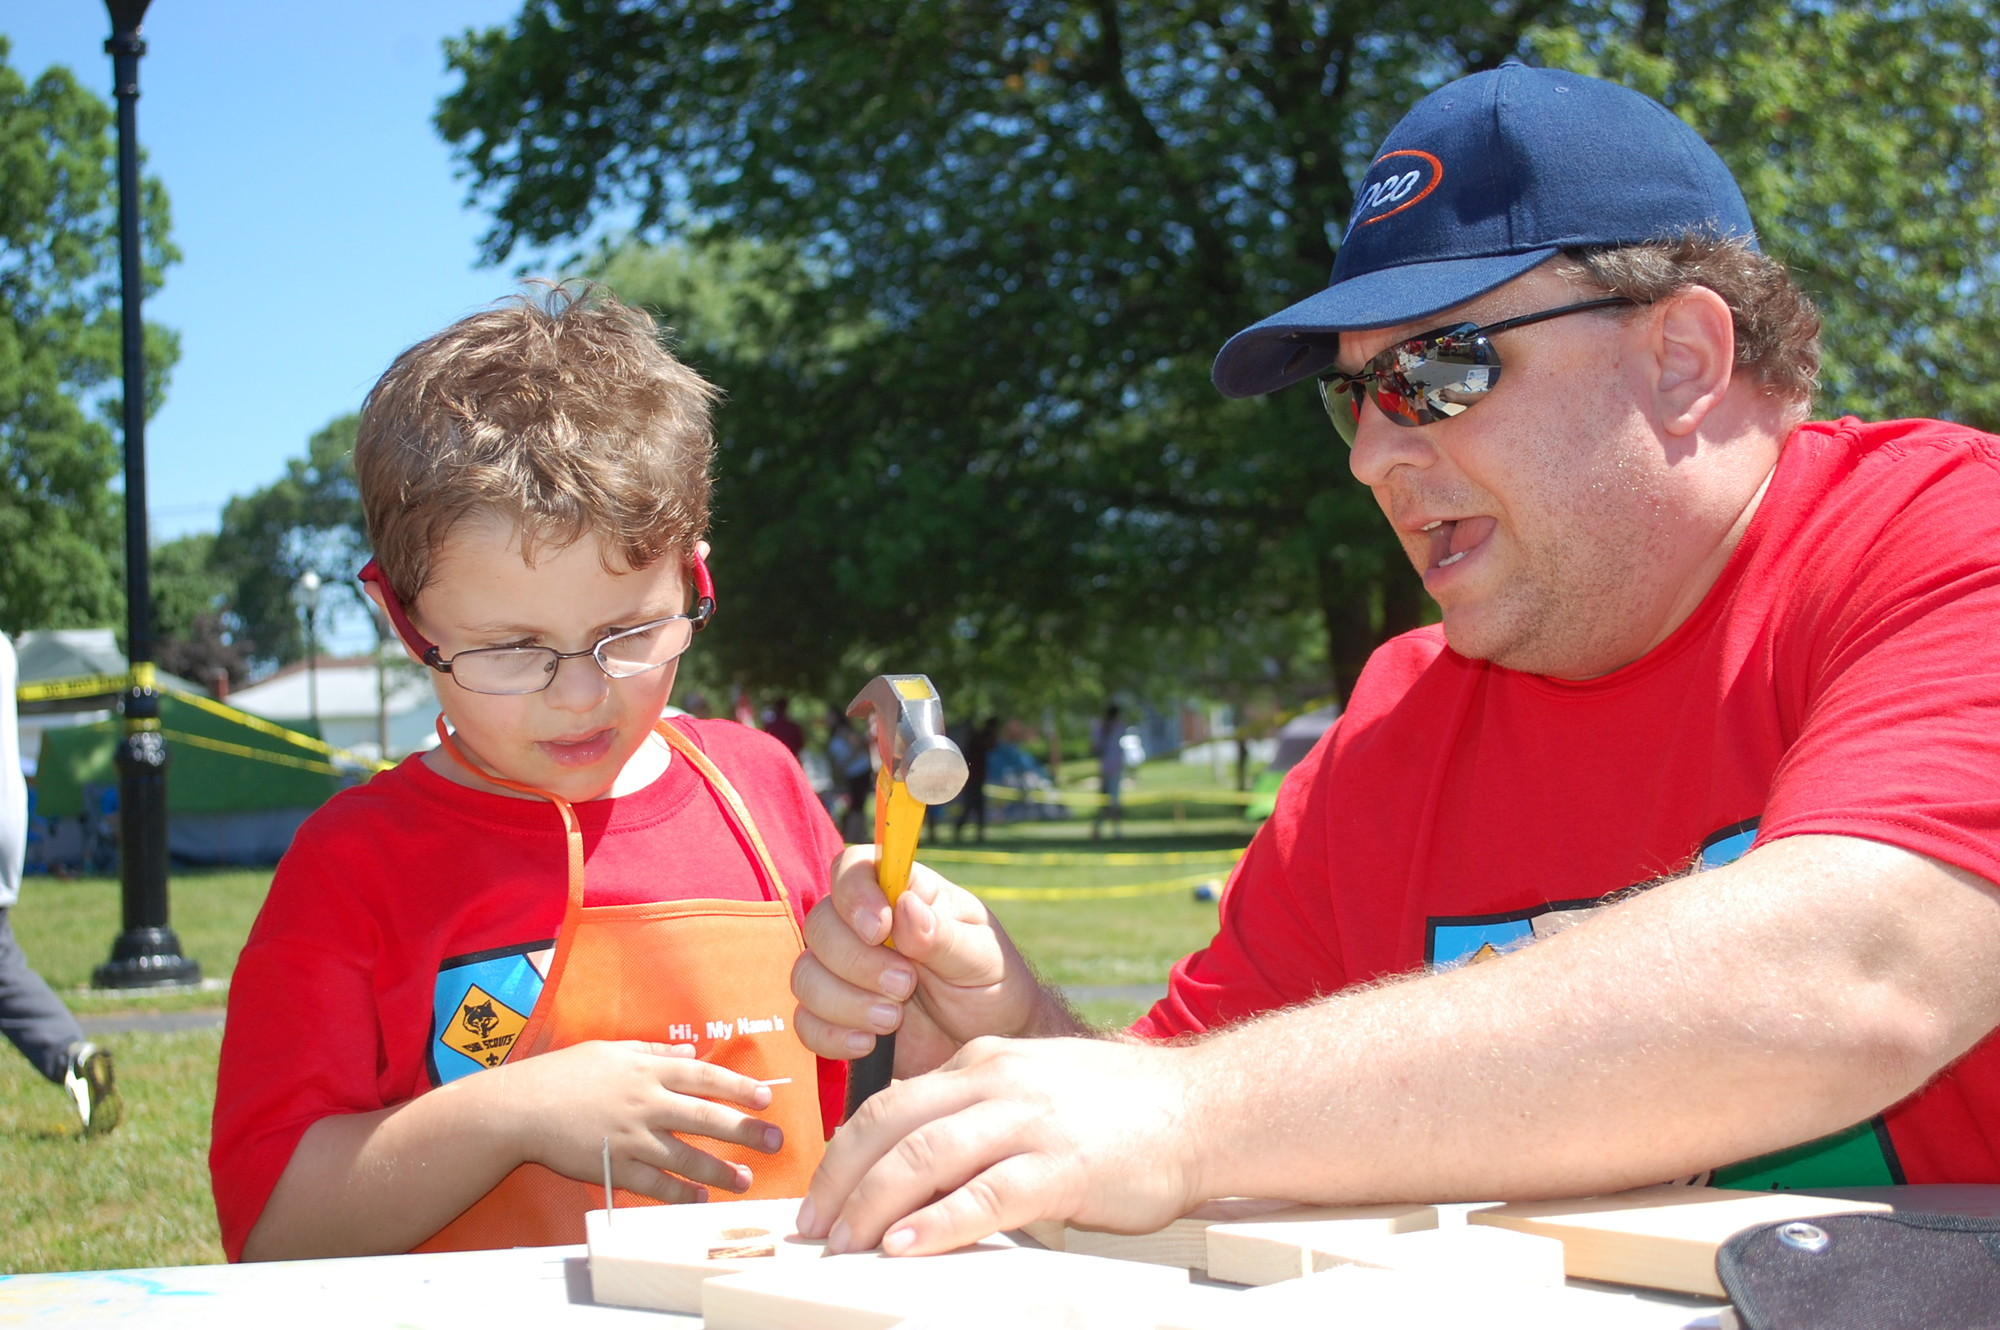 Sean Leon, 6, a Cub Scout from Pack 367, got some help from his father, Shawn, in building a birdhouse at the annual Valley Stream Scout Camporee held last weekend on the Village Green.